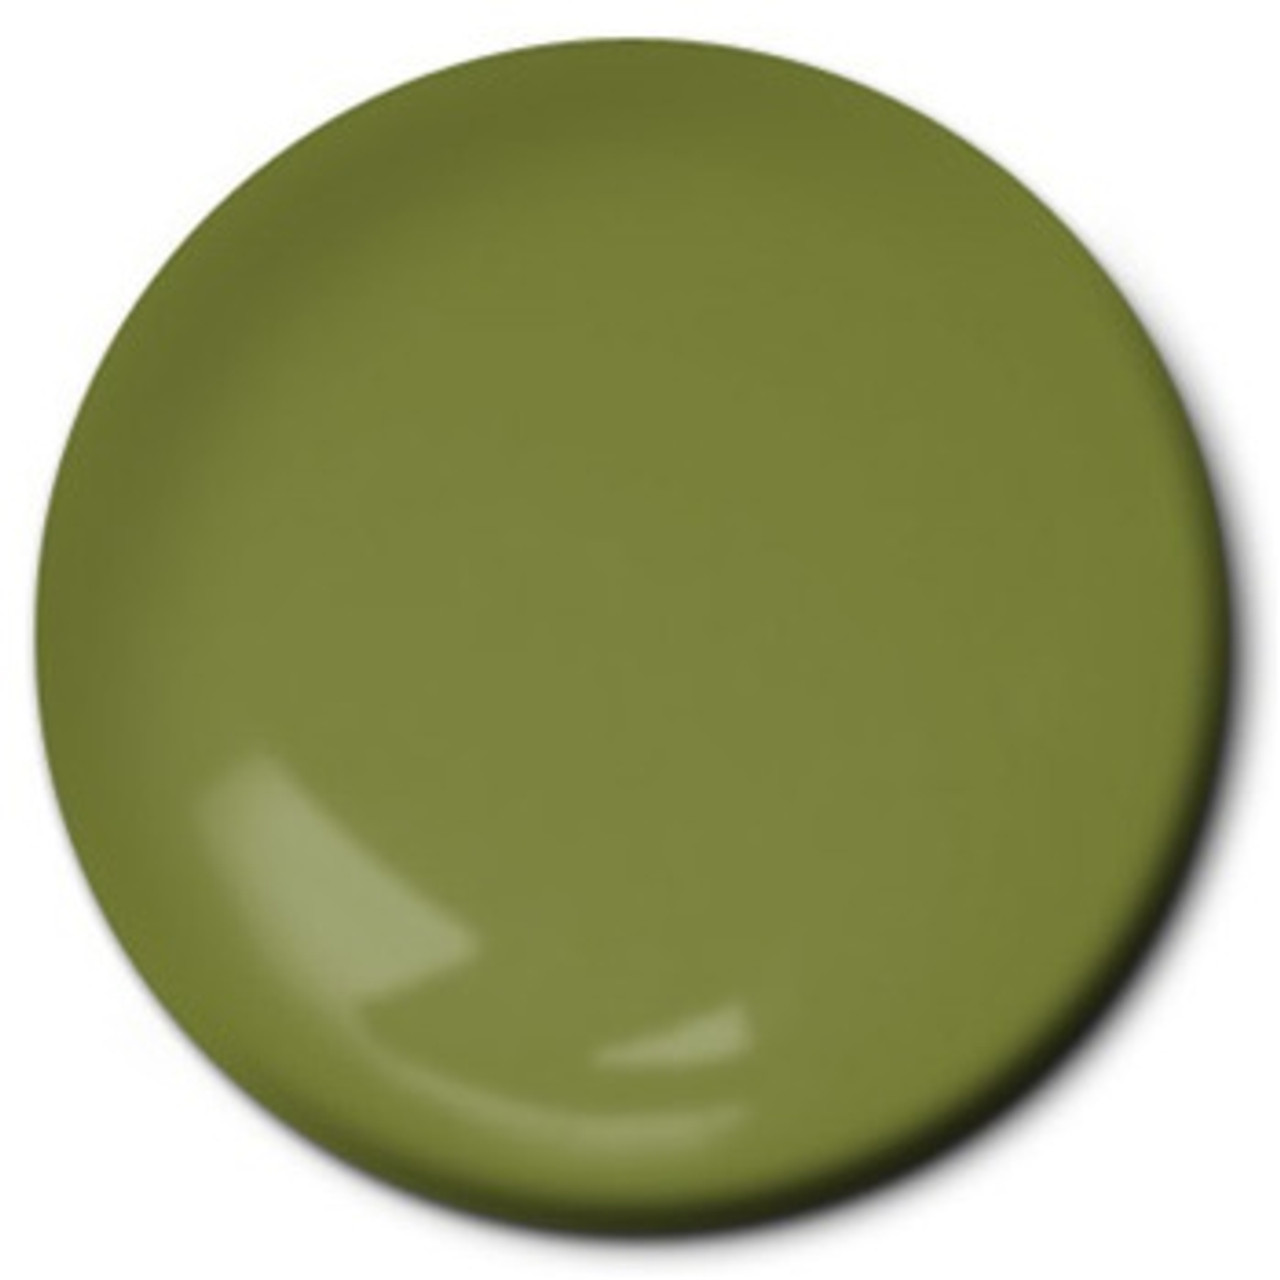 Testors 1164 Enamel Paint Flat Green, 1/4 oz